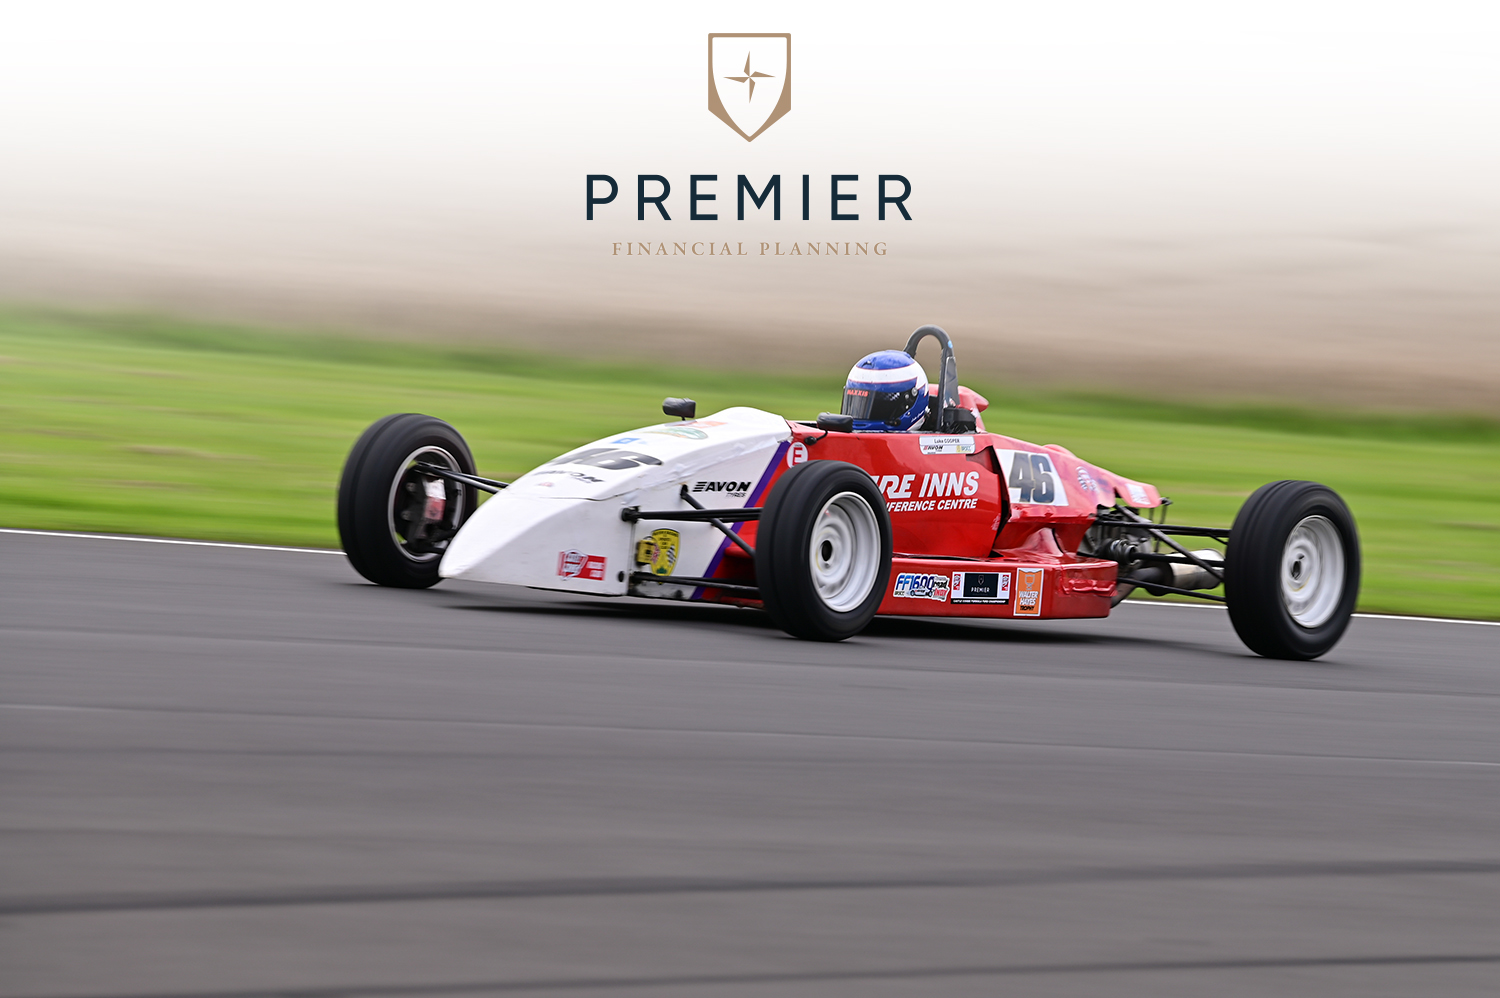 PREMIER FINANCIAL PLANNING TO CONTINUE SPONSORSHIP OF CASTLE COMBE'S FORMULA FORD 1600 SERIES